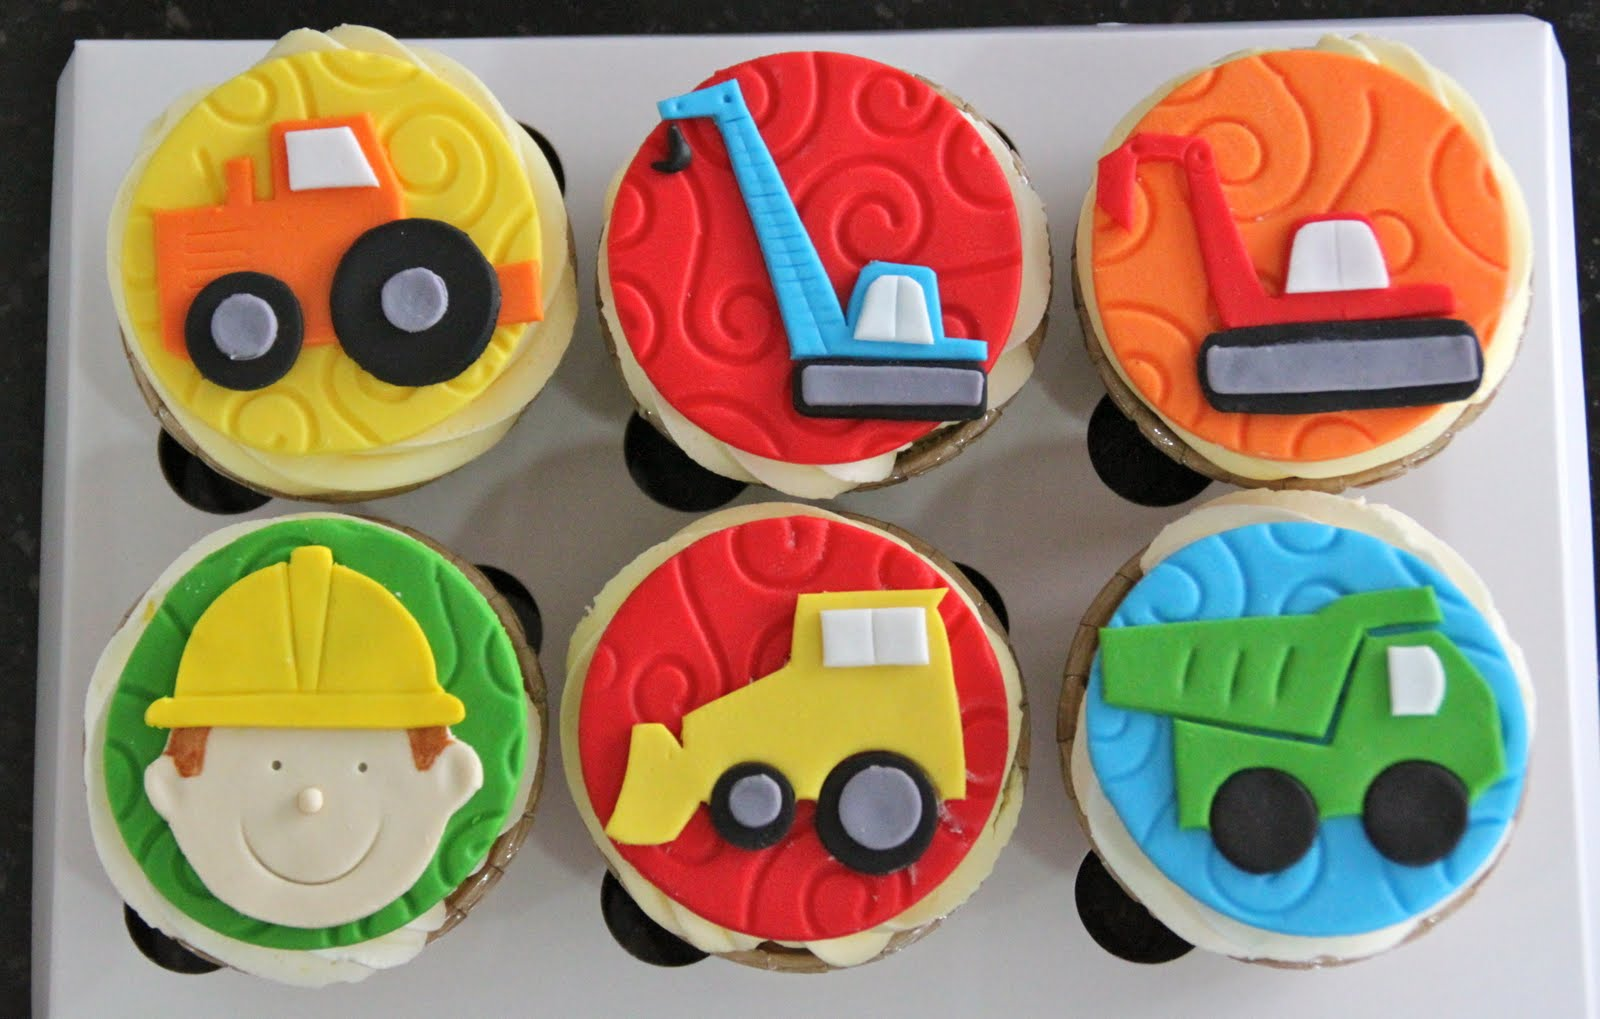 30 Construction Cupcakes For Builders Cupcakes Gallery